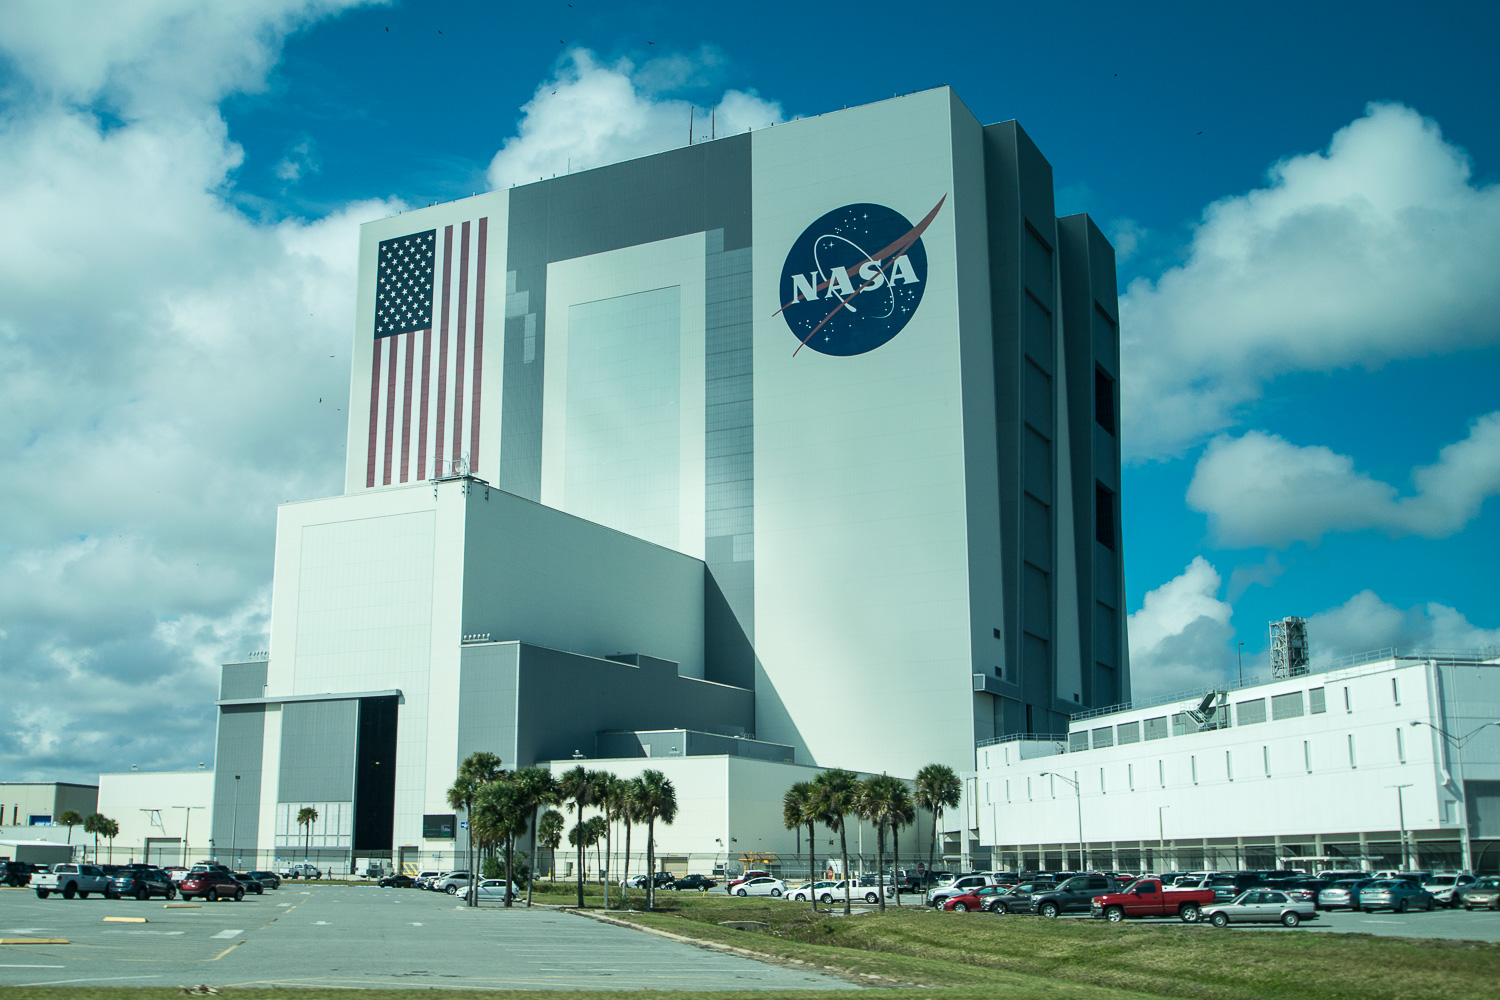 Kennedy Space Center, Florida